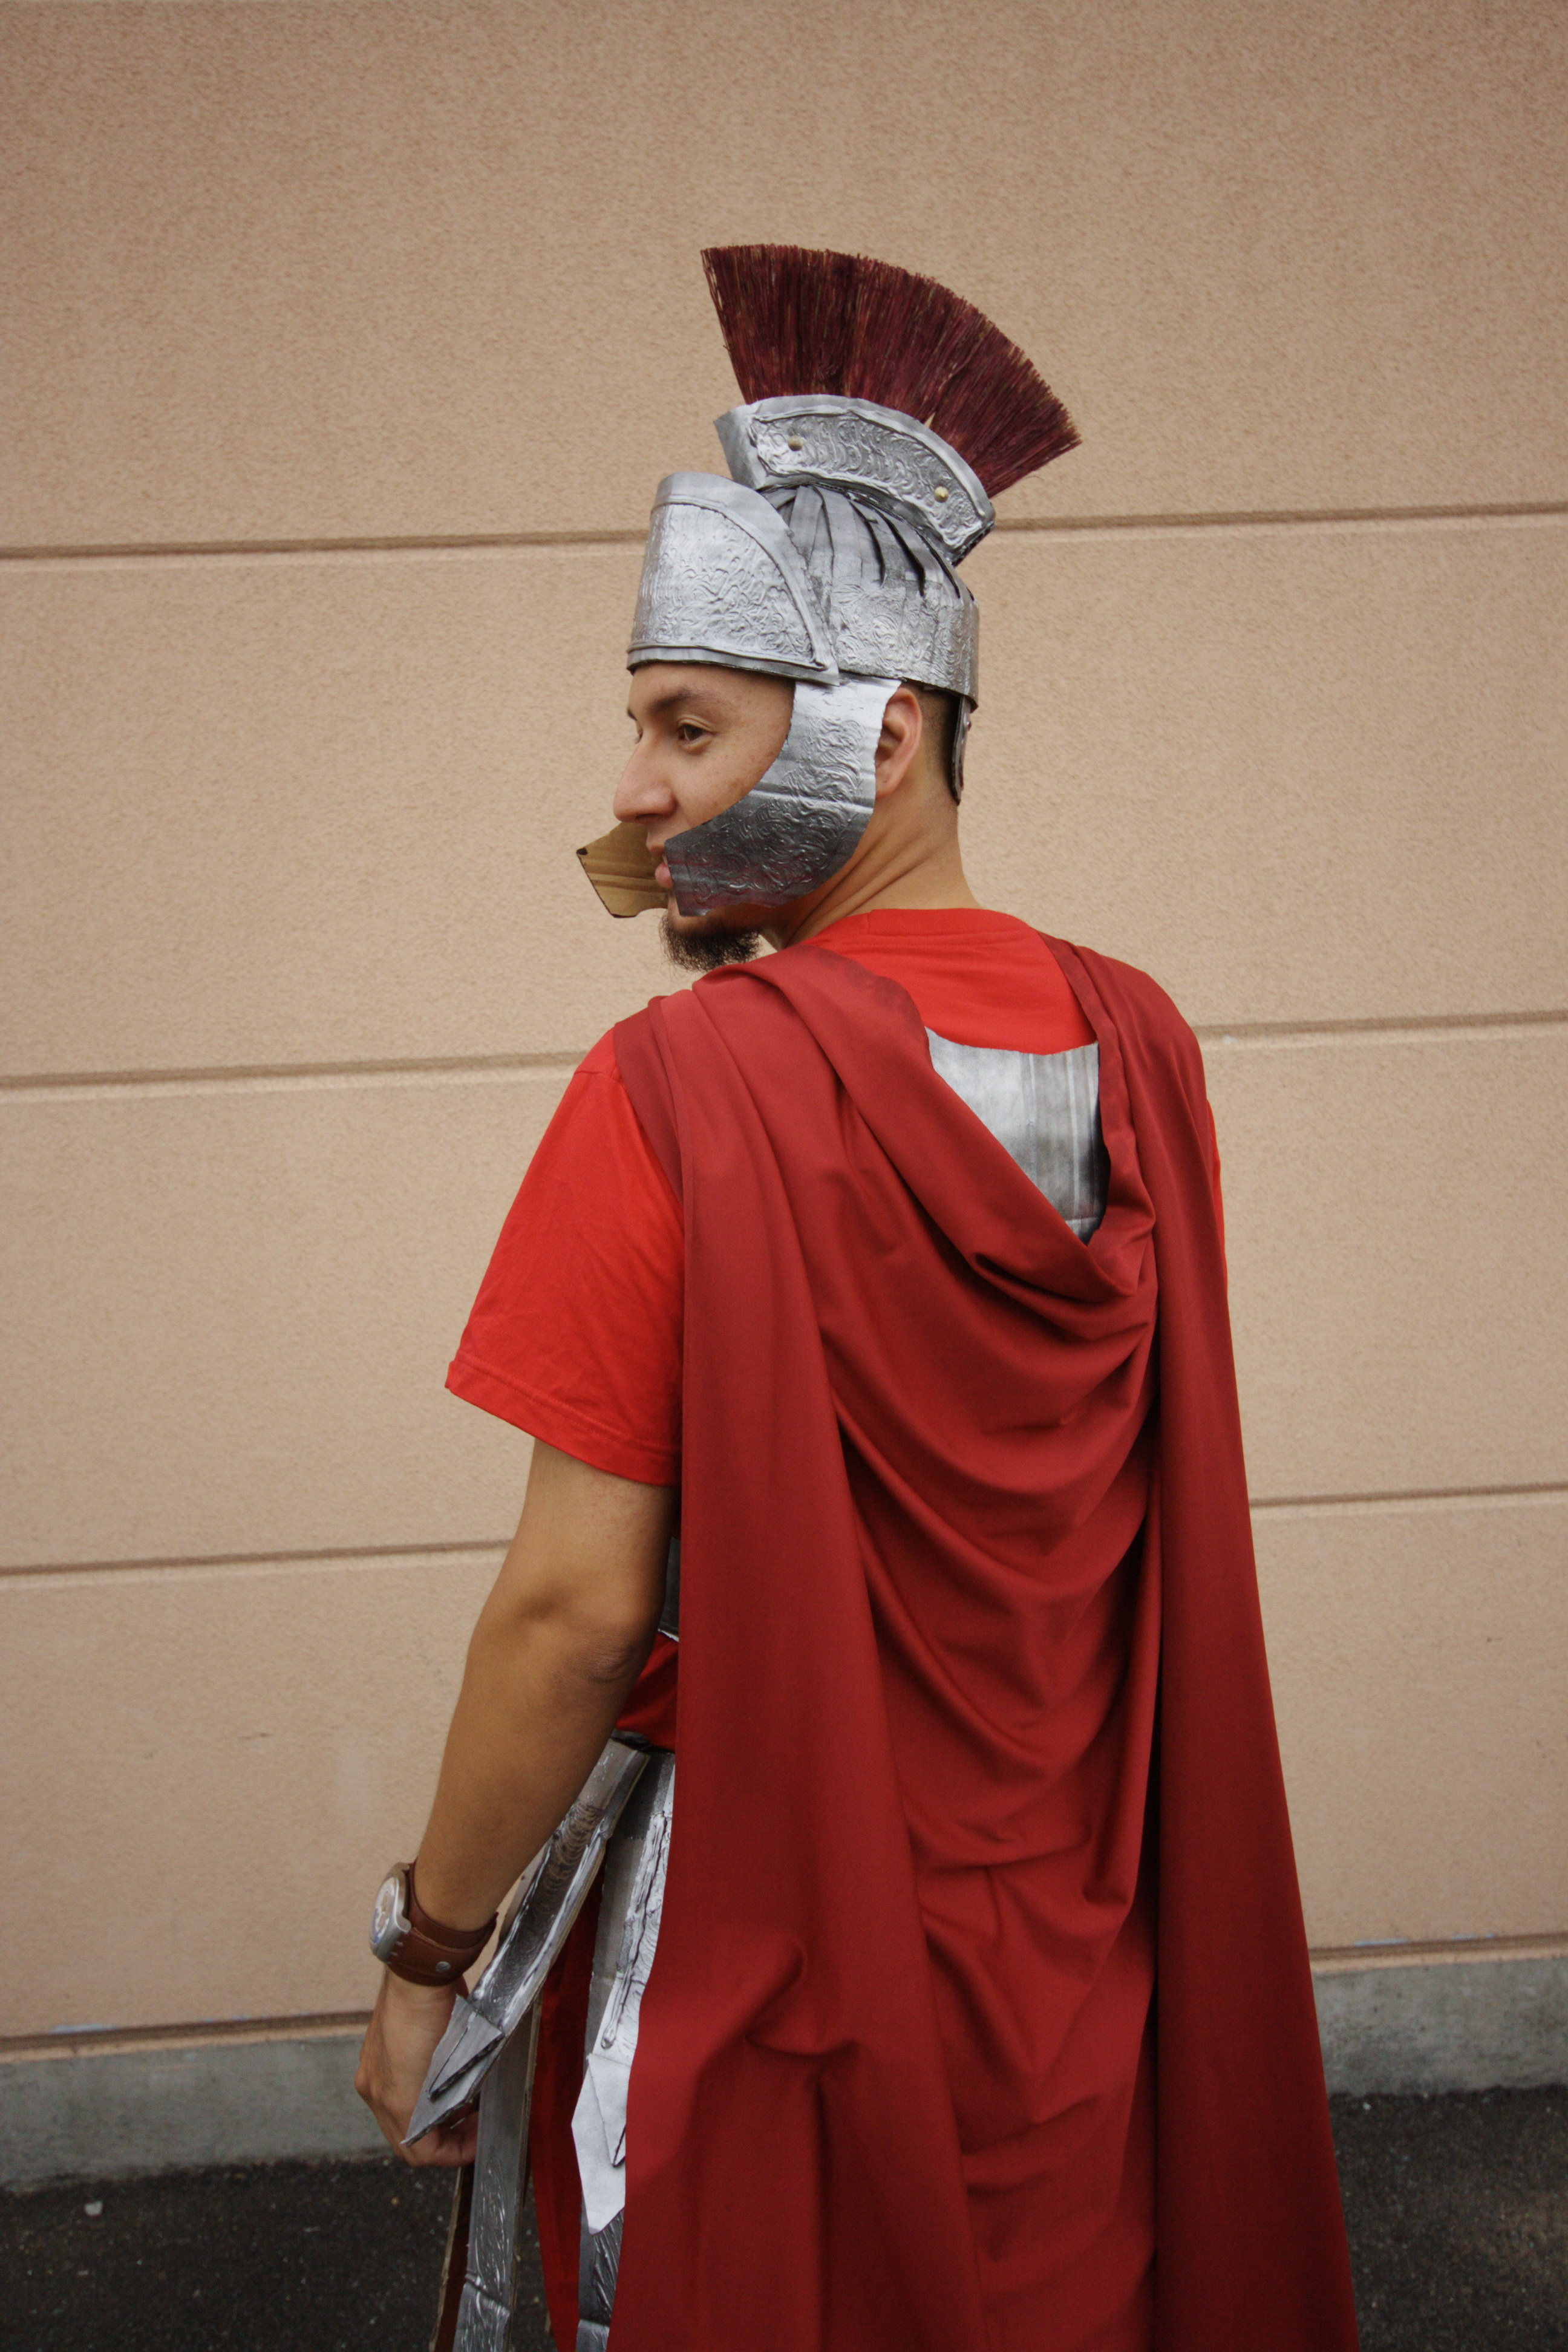 Picture of Roman-esque Soldier Uniform - From Cardboard!